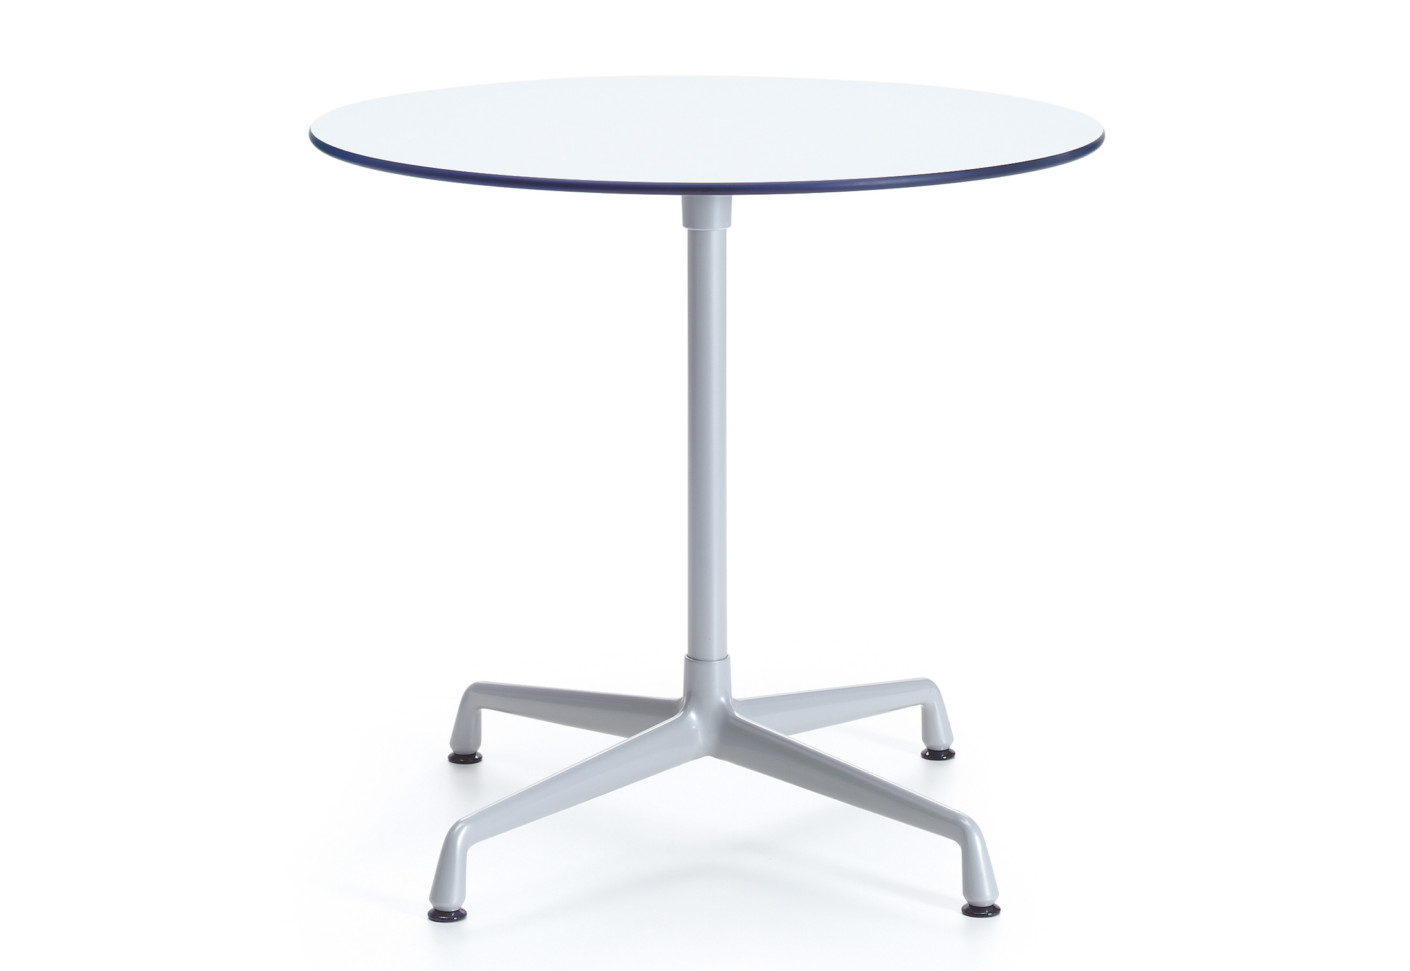 Eames Contract Table Round By Vitra Stylepark